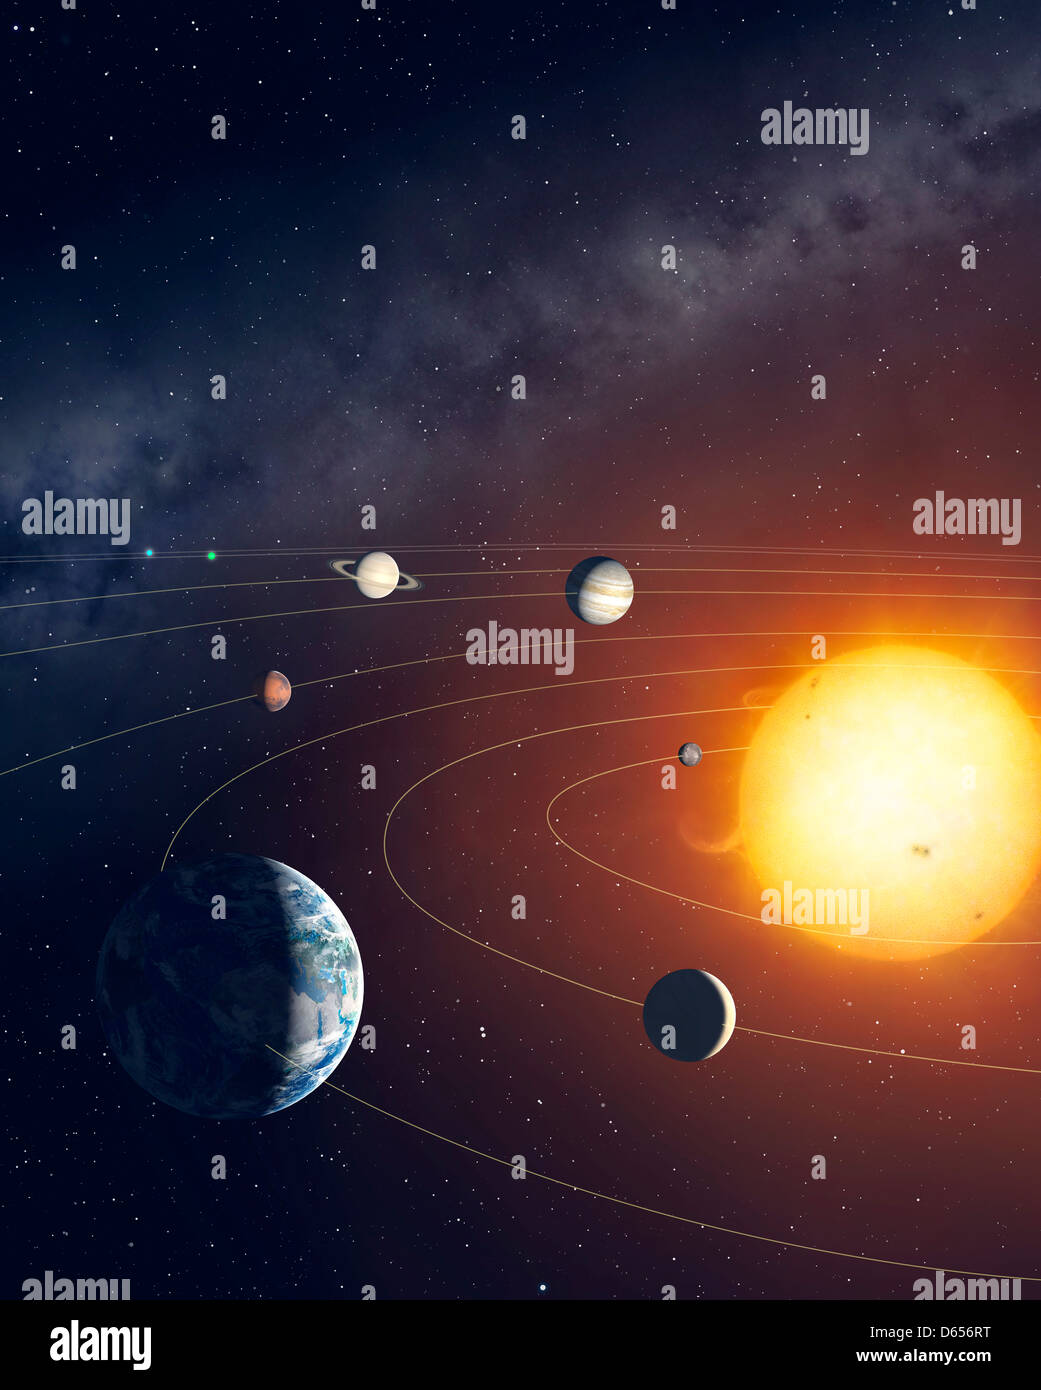 solar system sun planets stockfotos solar system sun planets bilder alamy. Black Bedroom Furniture Sets. Home Design Ideas